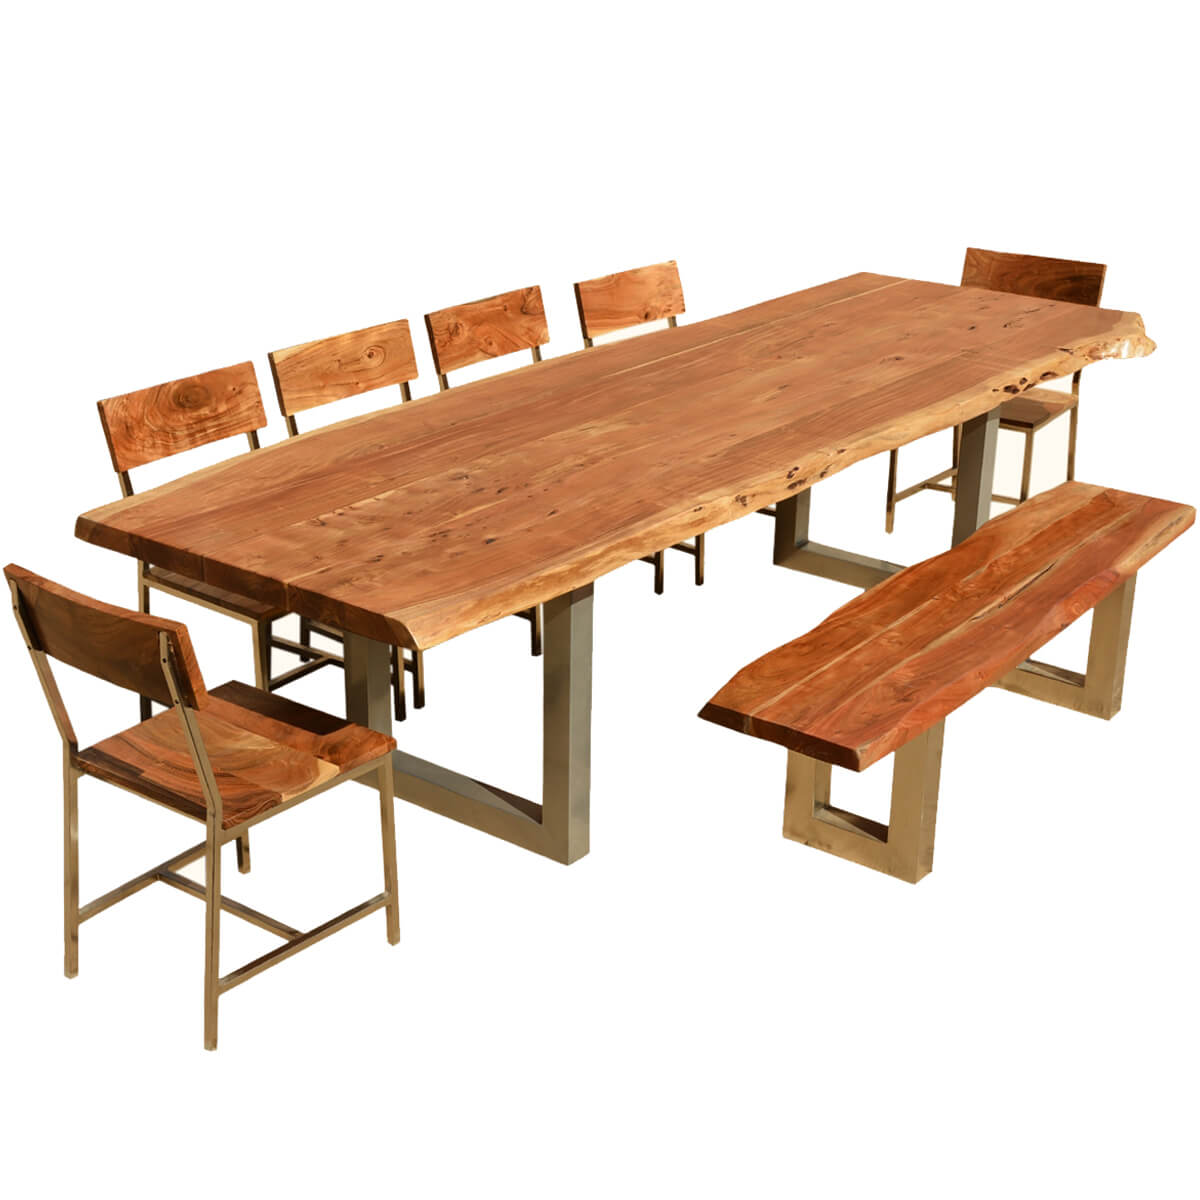 Acacia Dining Table 117 Quot Live Edge Dining Table W 6 Chairs And Bench Acacia